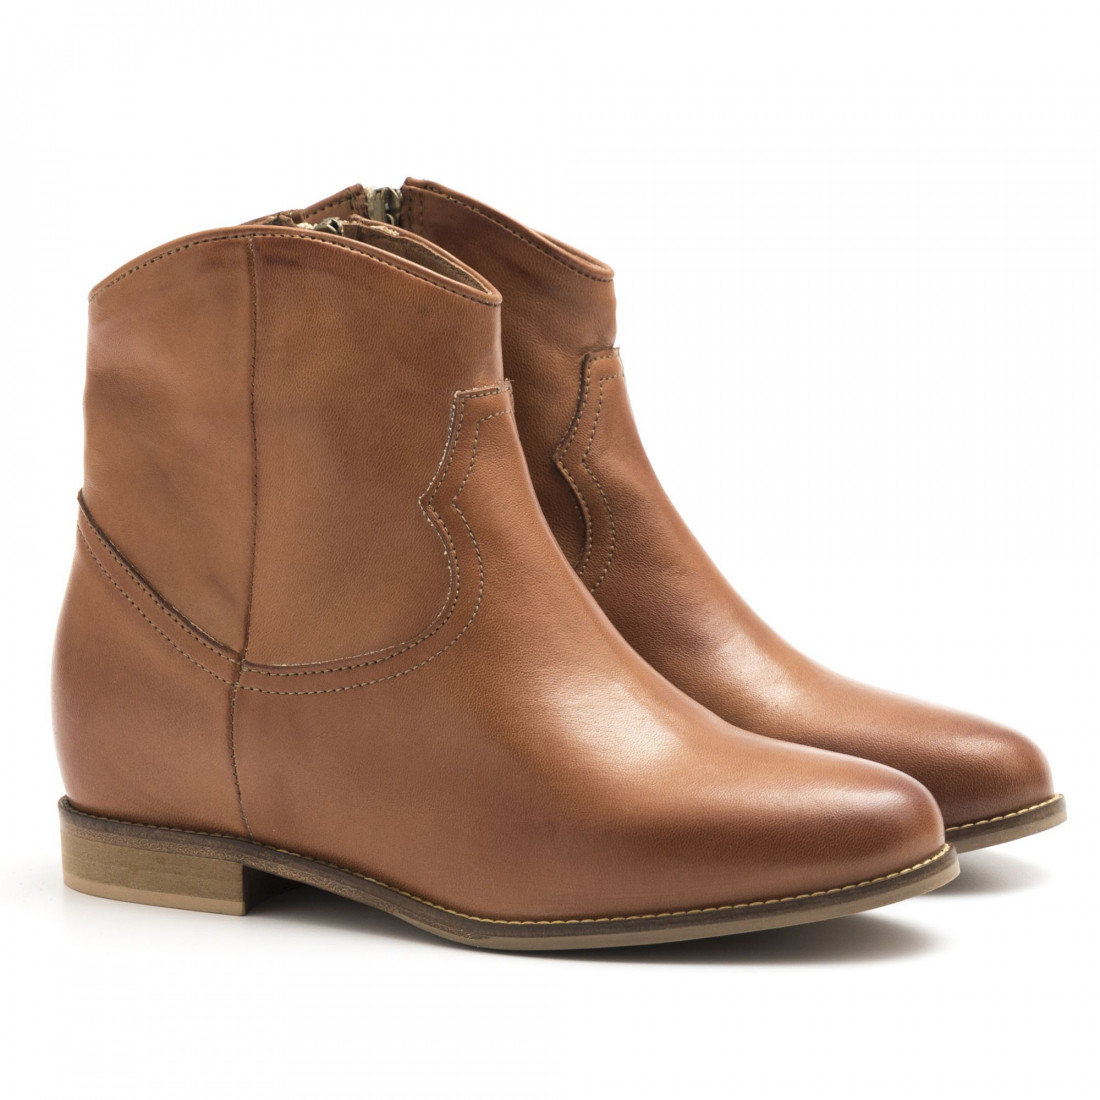 booties woman keb 090soft cuoio 4393